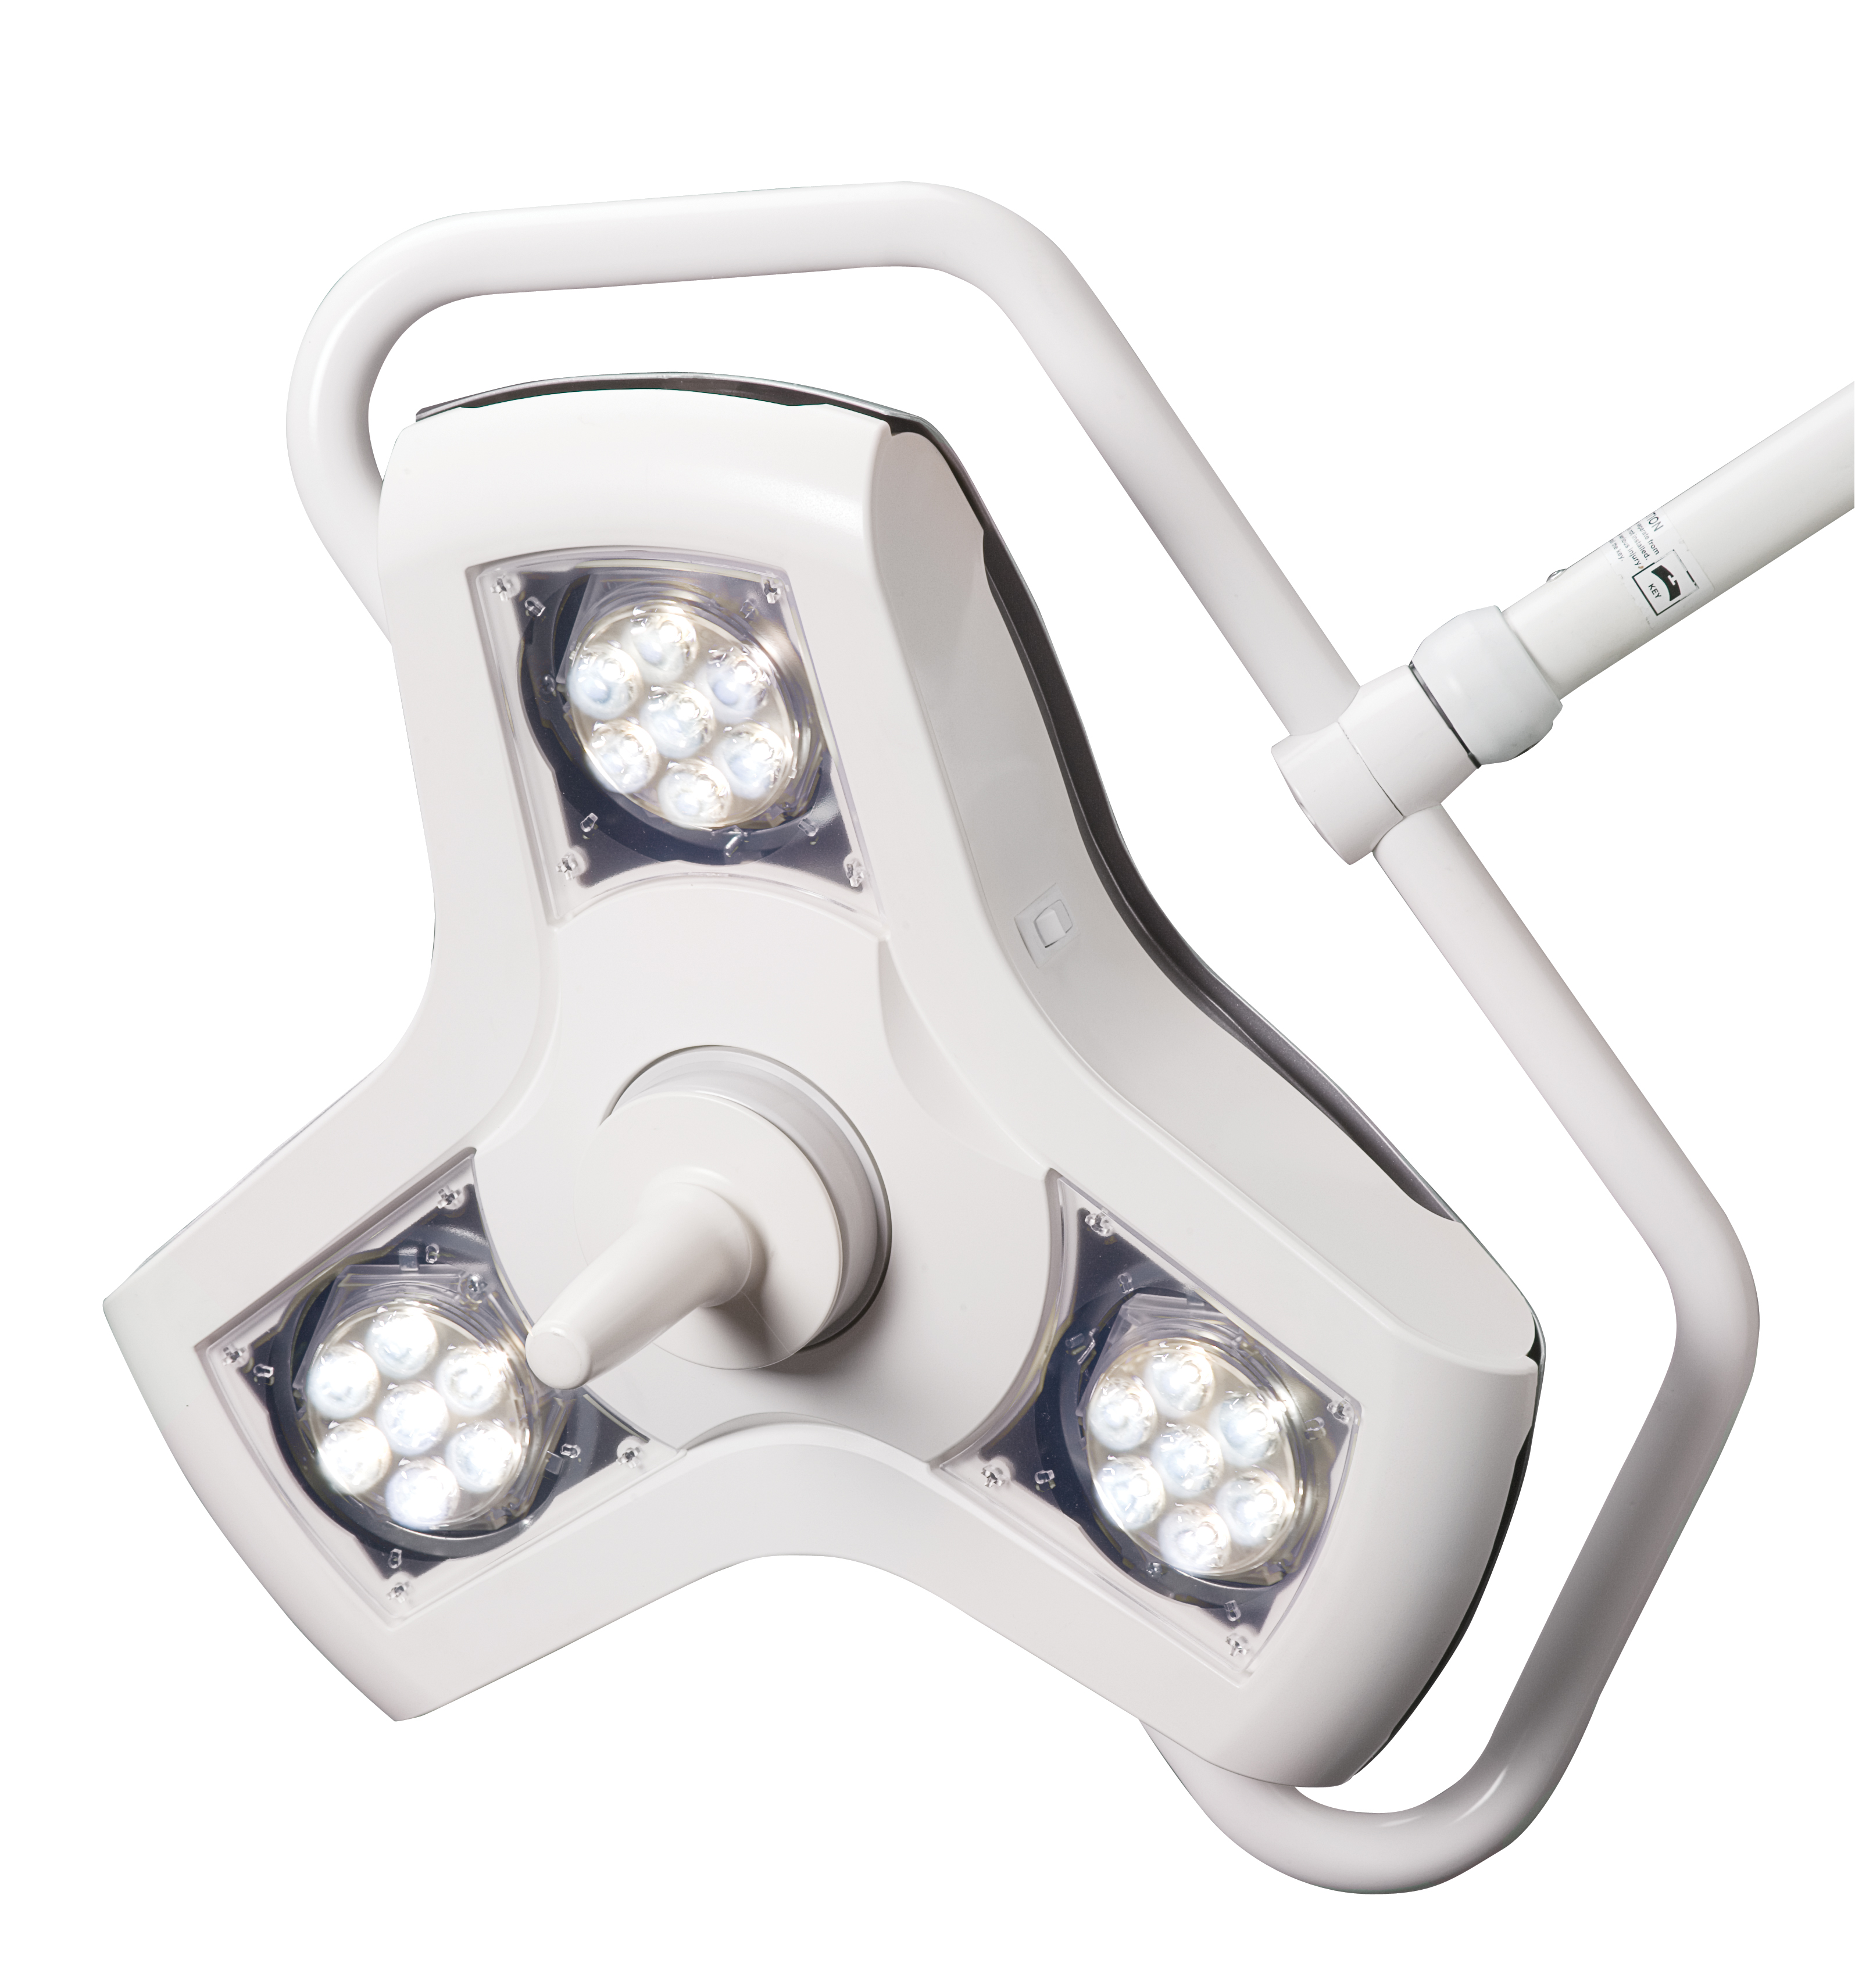 Philips adds to its healthcare lighting portfolio with the